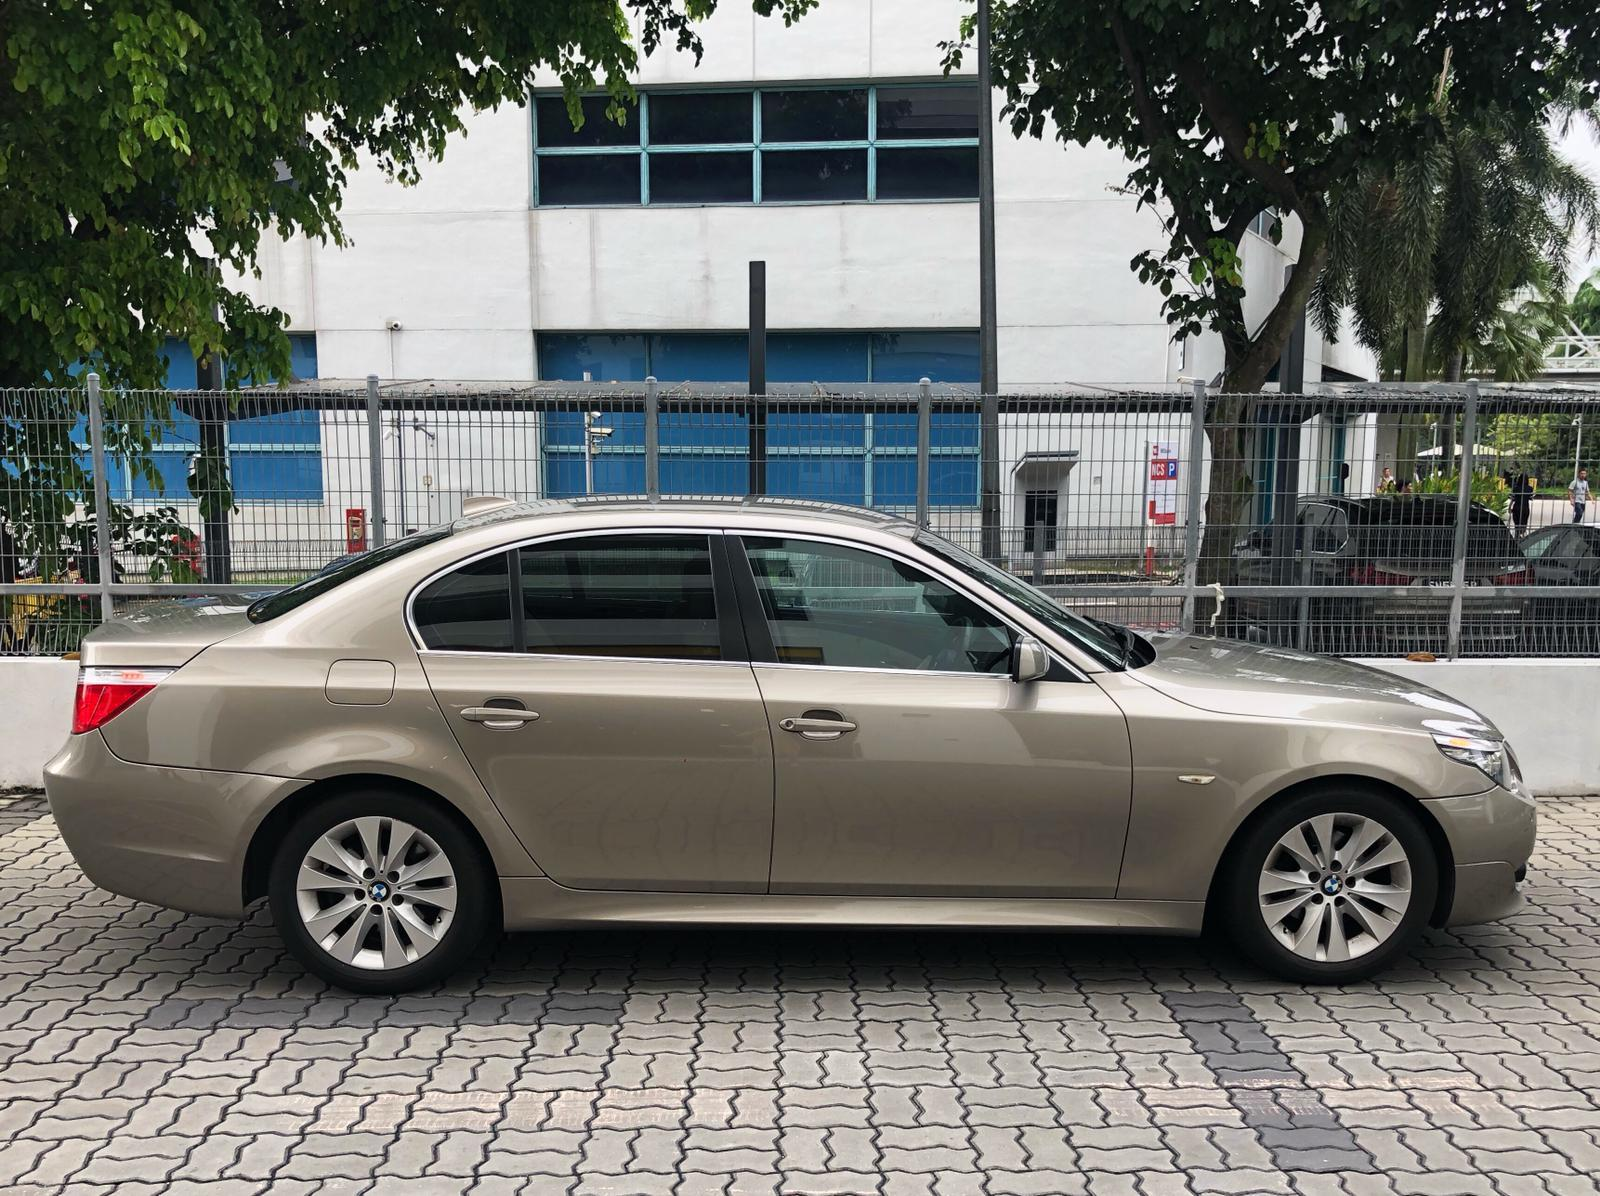 BMW 525i XL conti luxury car rent for personal use grab gojek long term.cheap rental(min 2mth).